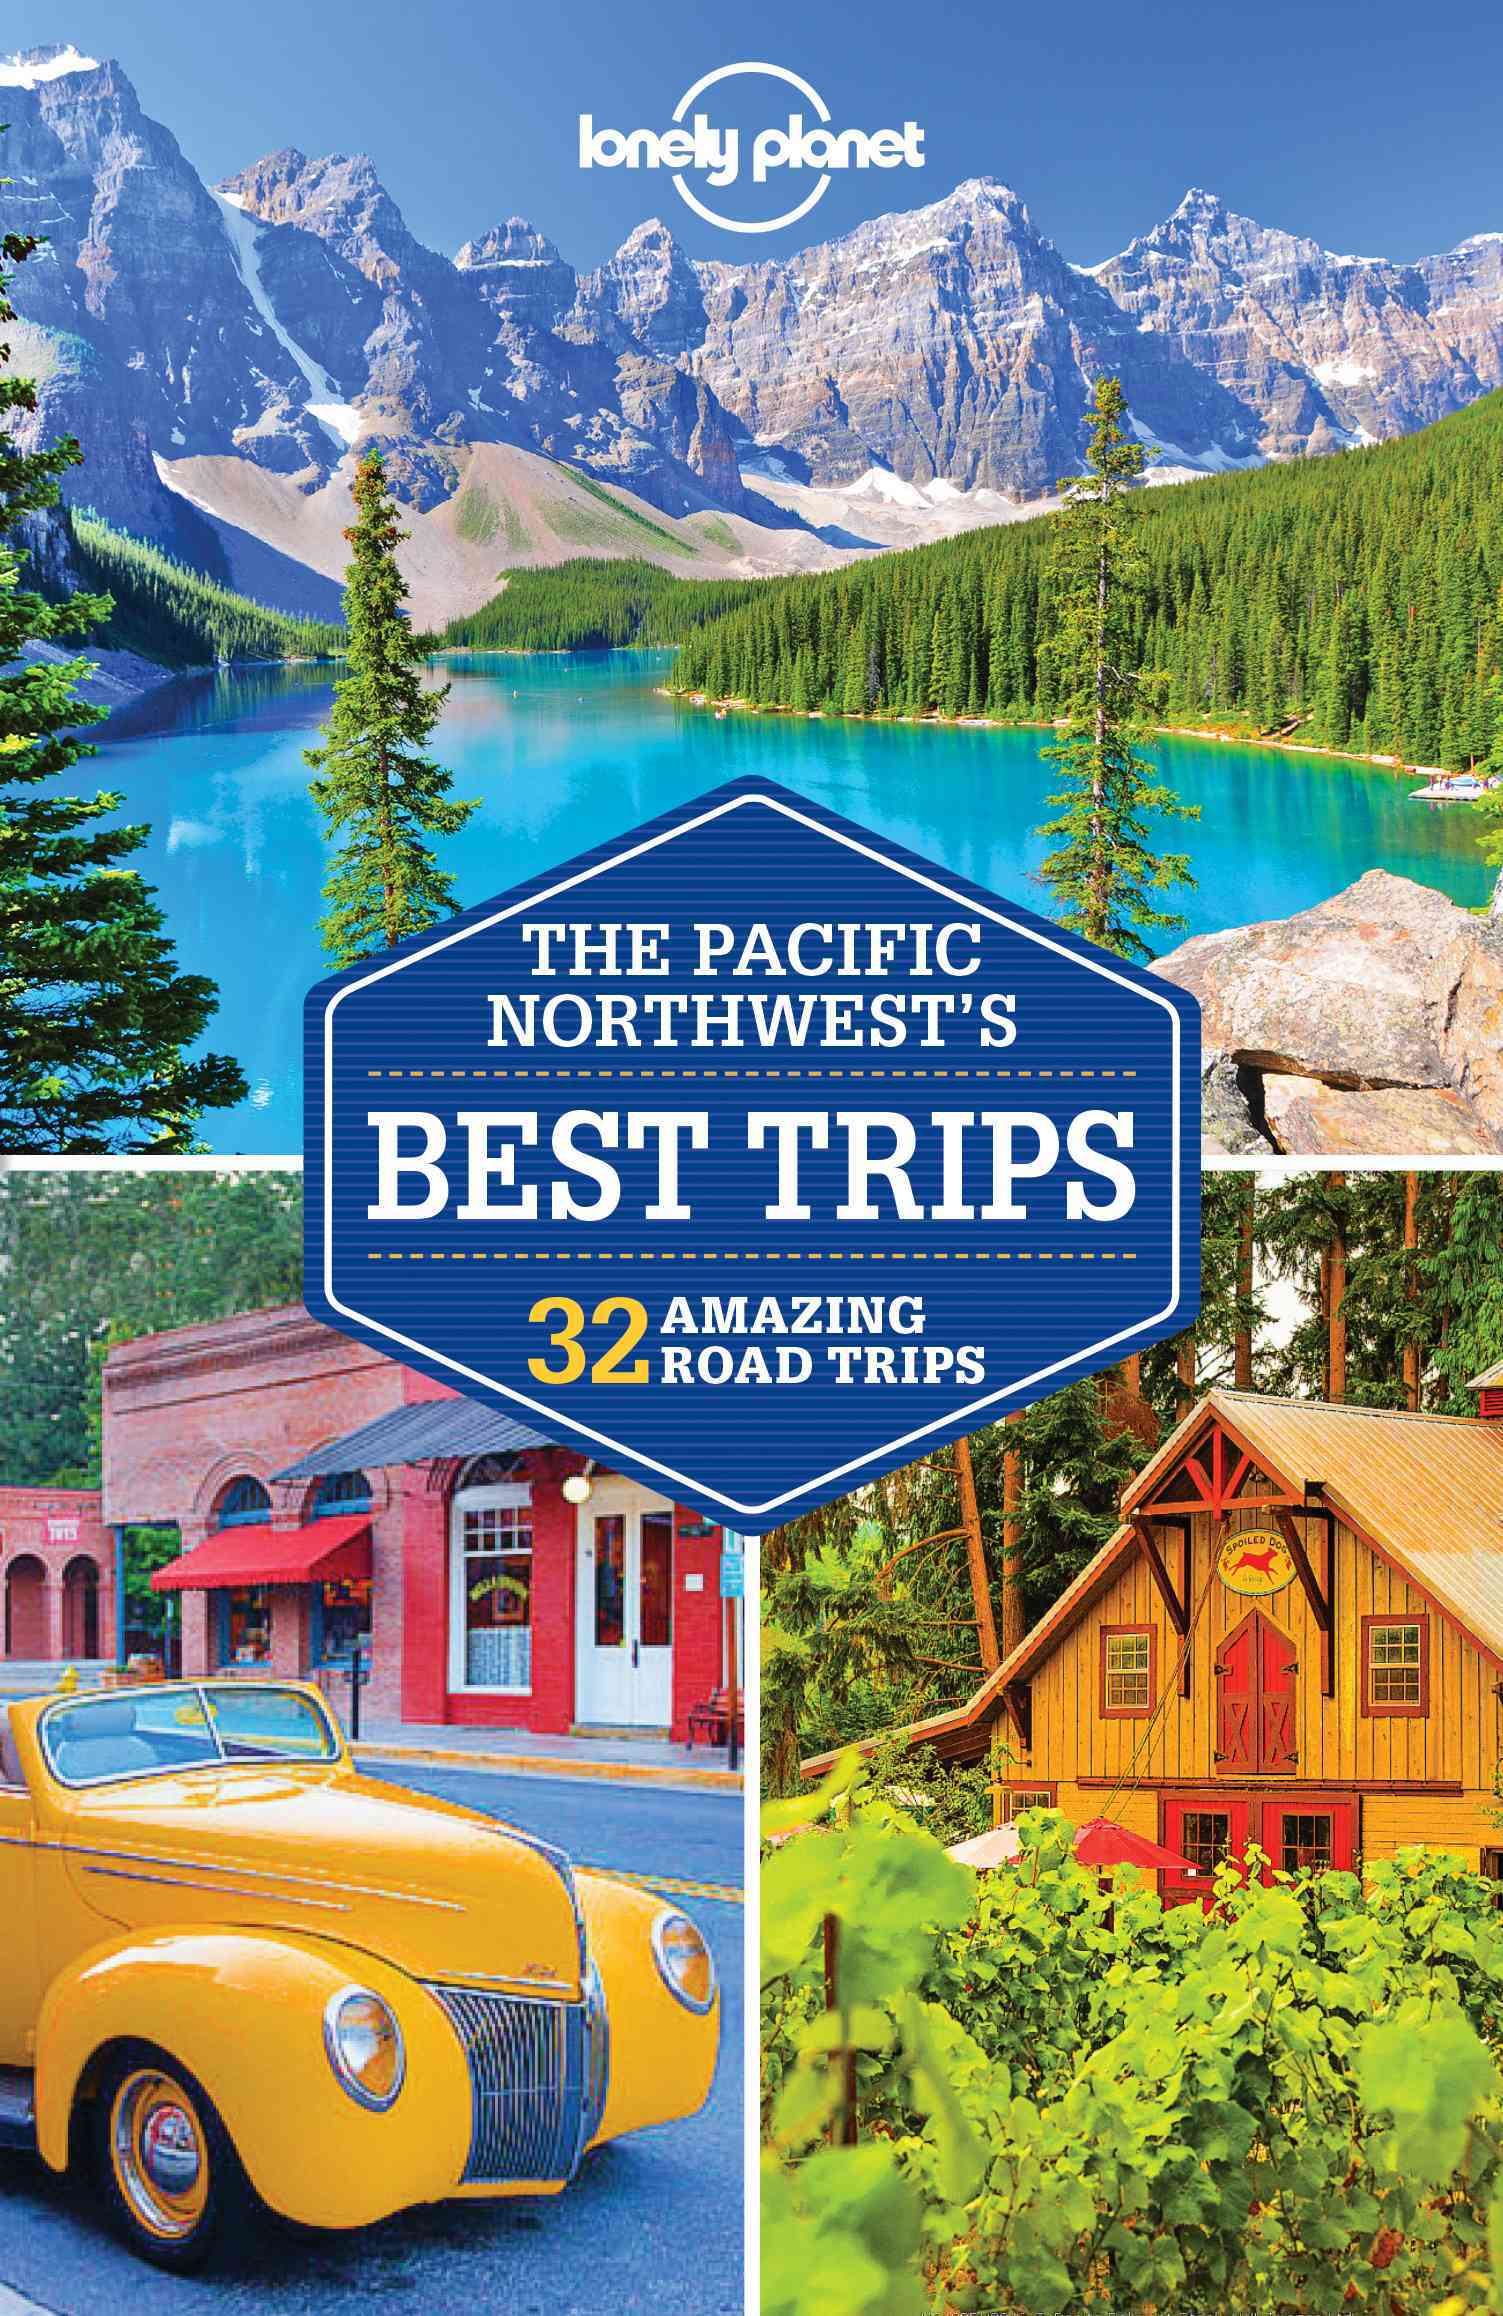 Lonely Planet Pacific Northwest Best Trips 3.